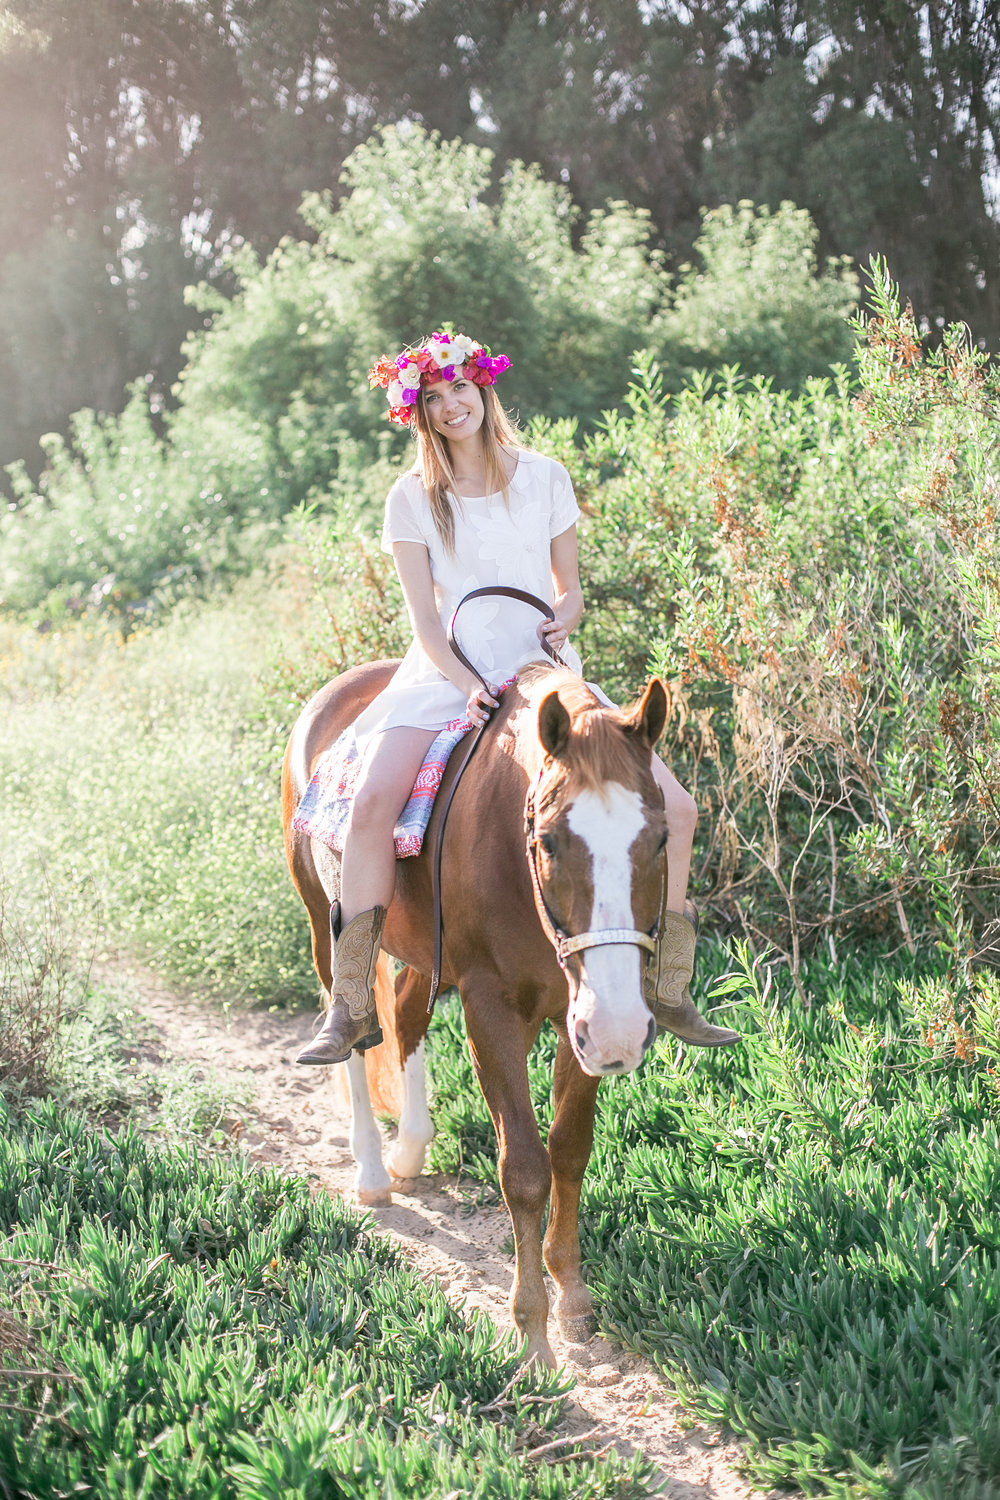 Mendola_Family _Session_Del_Mar_Equestrian_Ranch_2017-11.jpg